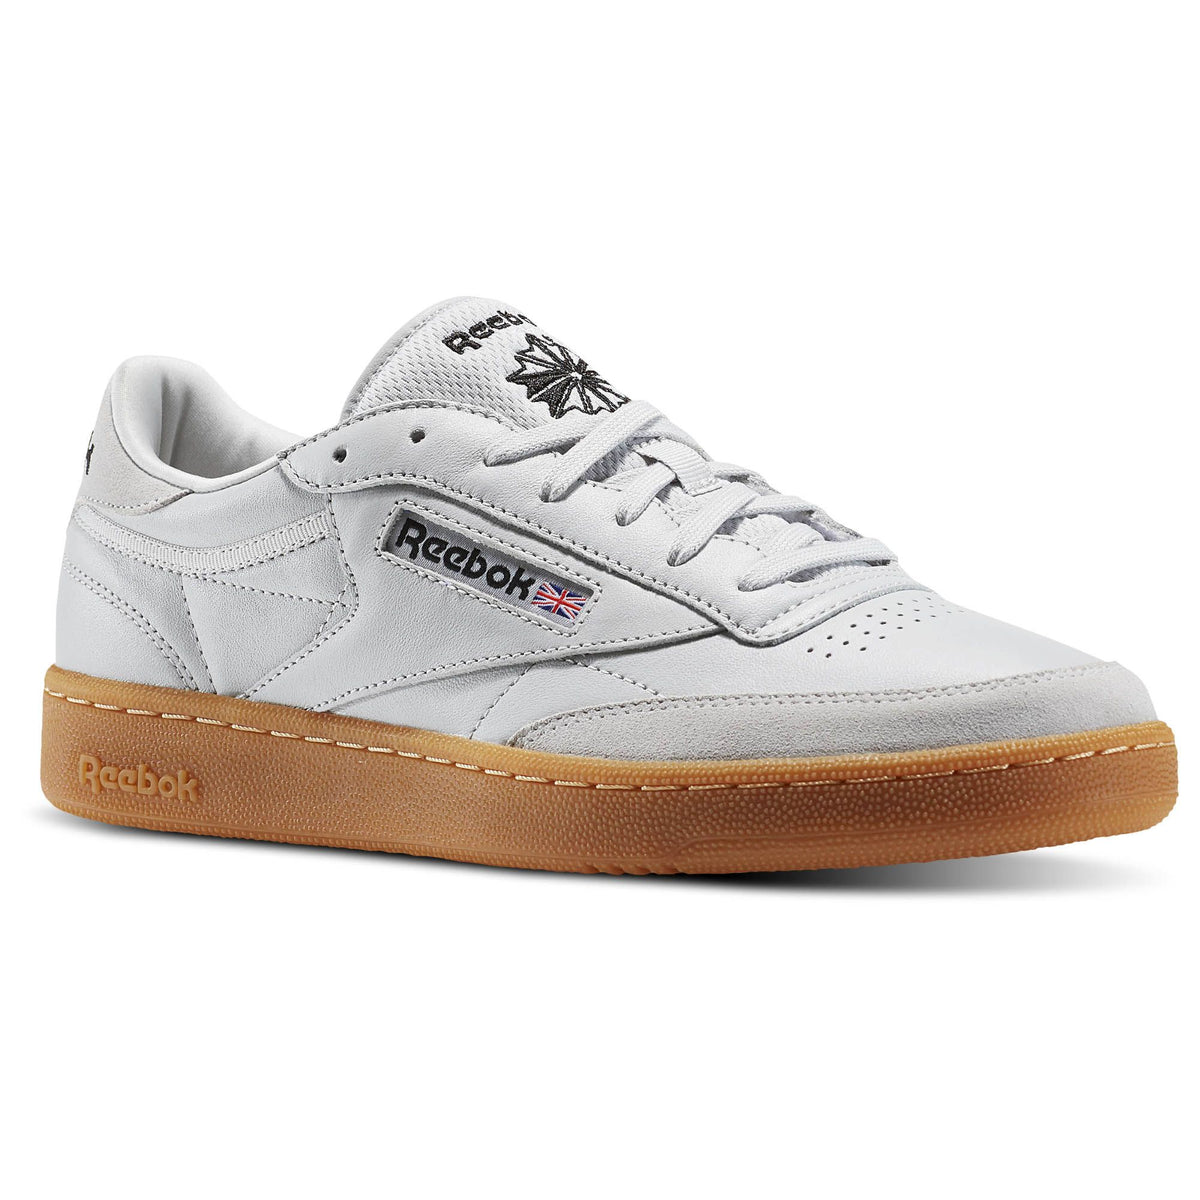 REEBOK - CLUB C 85 TDG - SKULL GREY/BLACK/RED